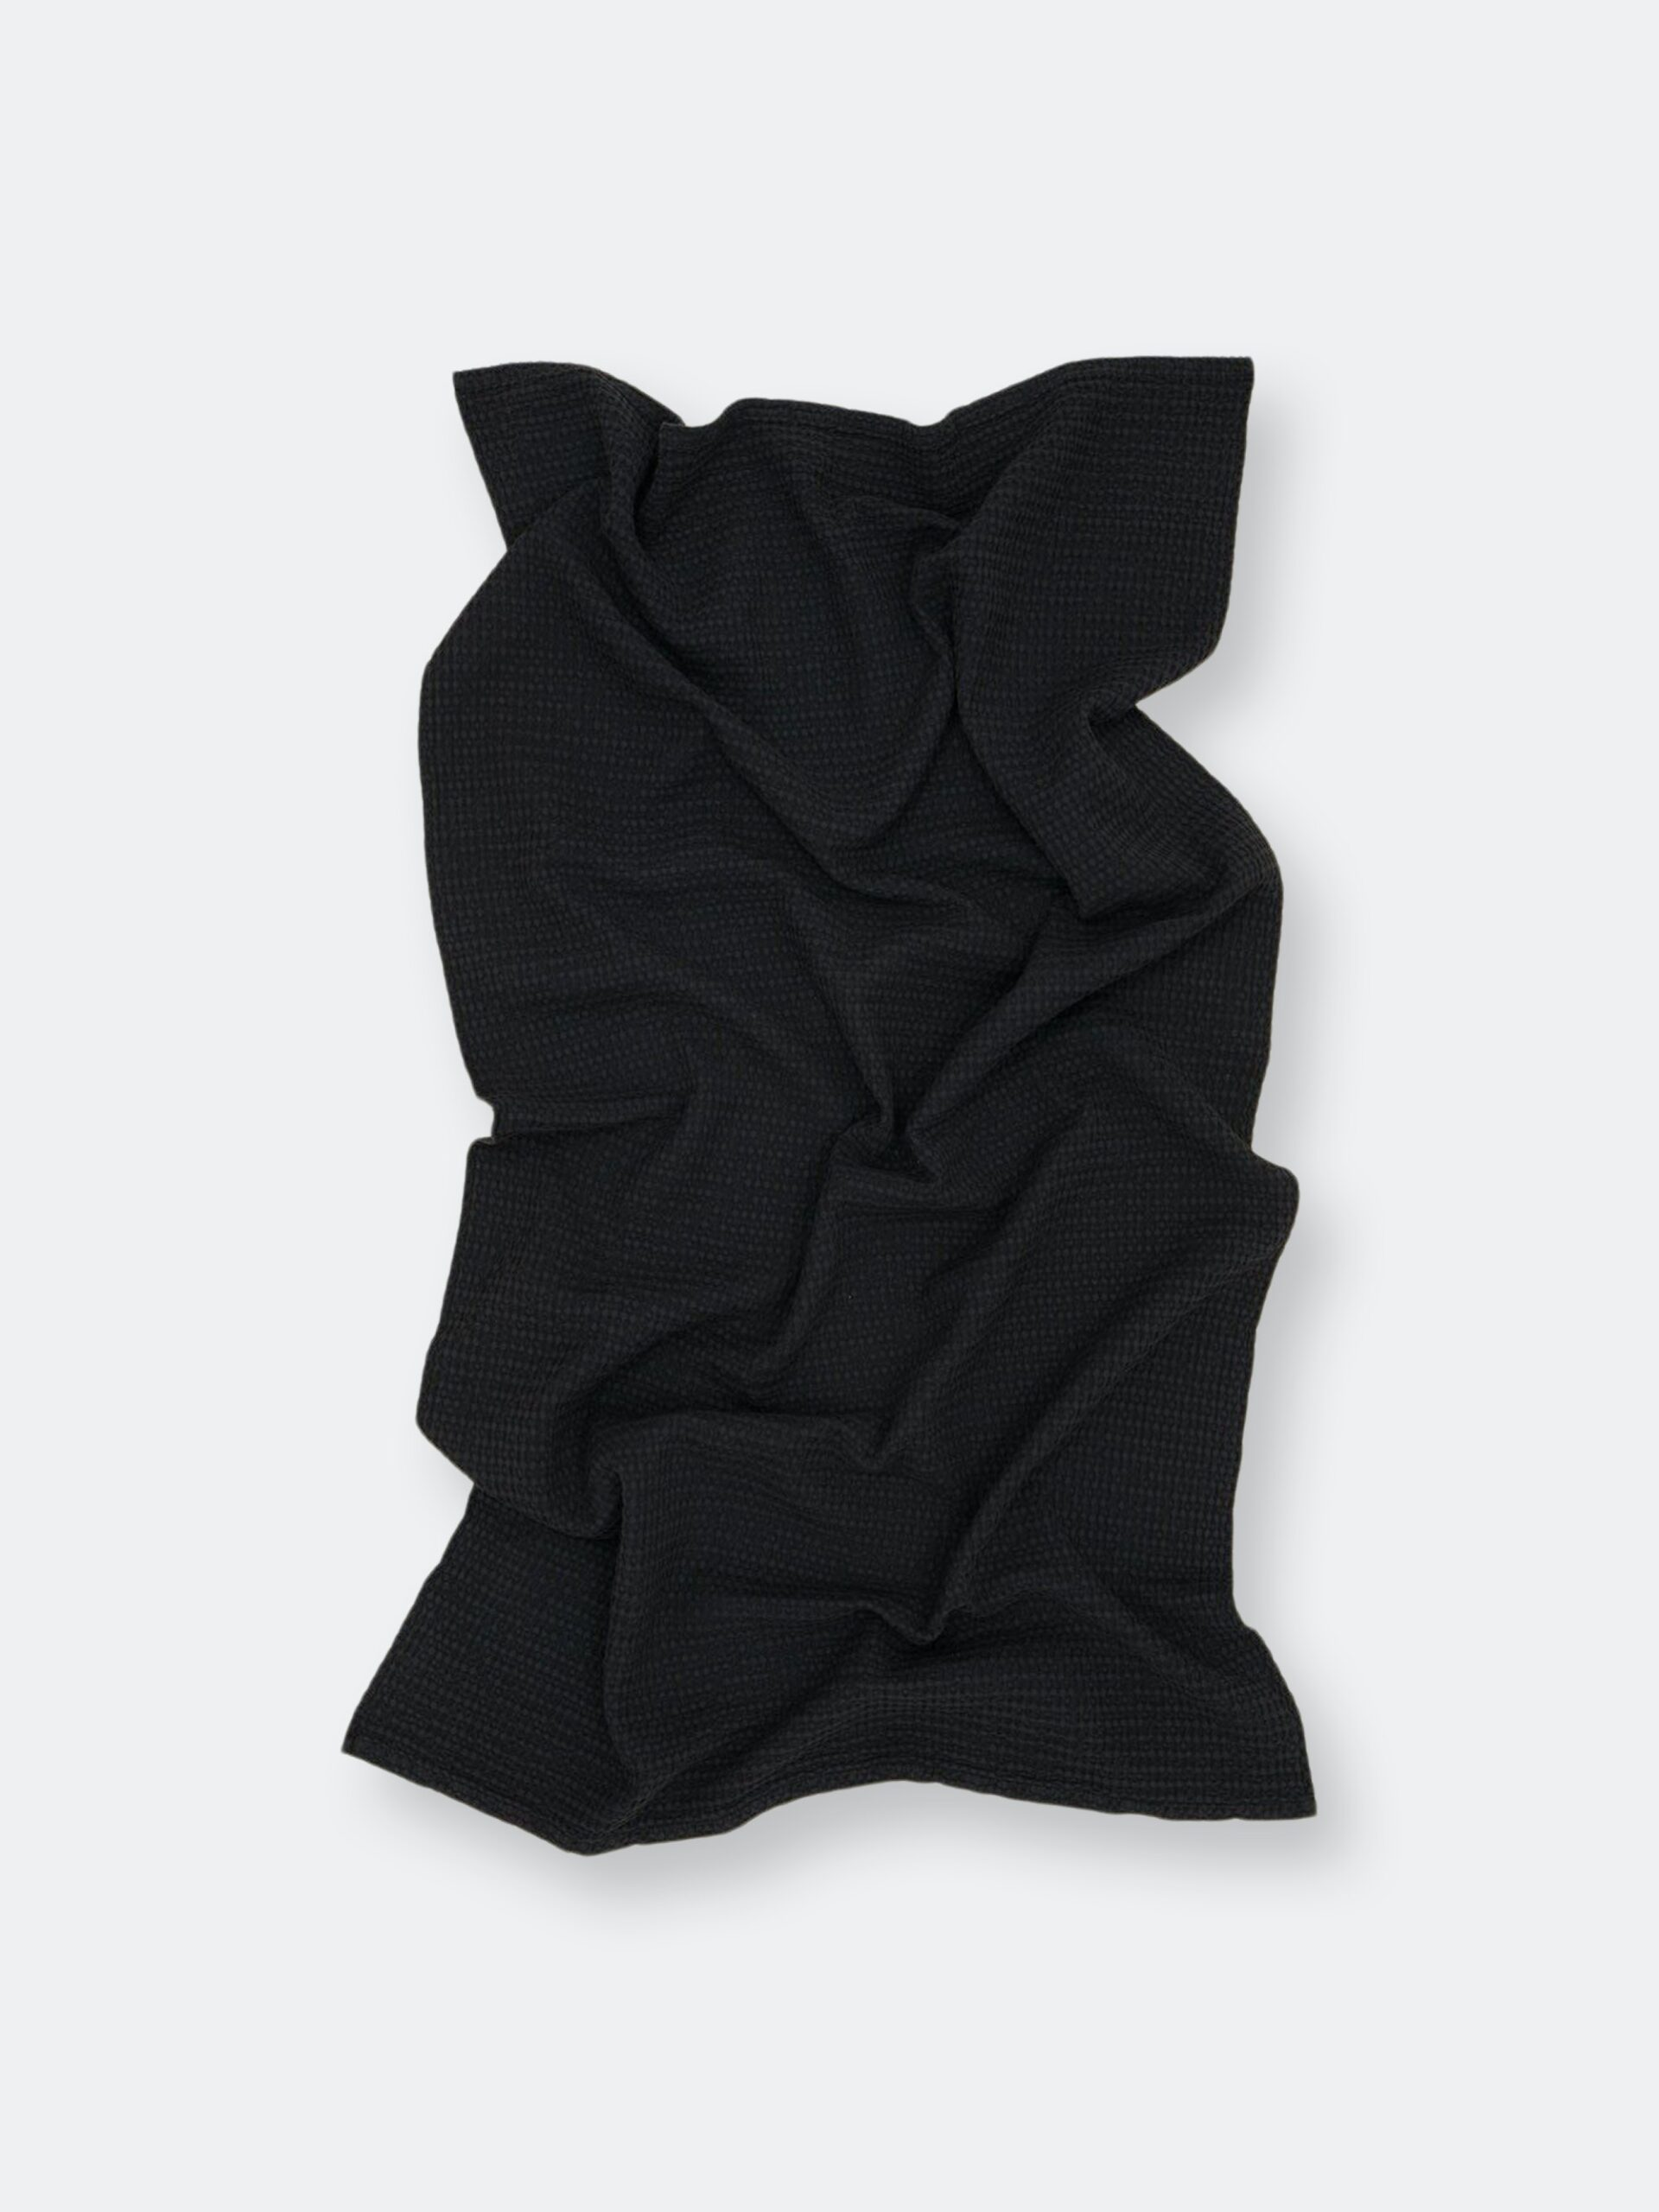 Simple Waffle Towels $95.00